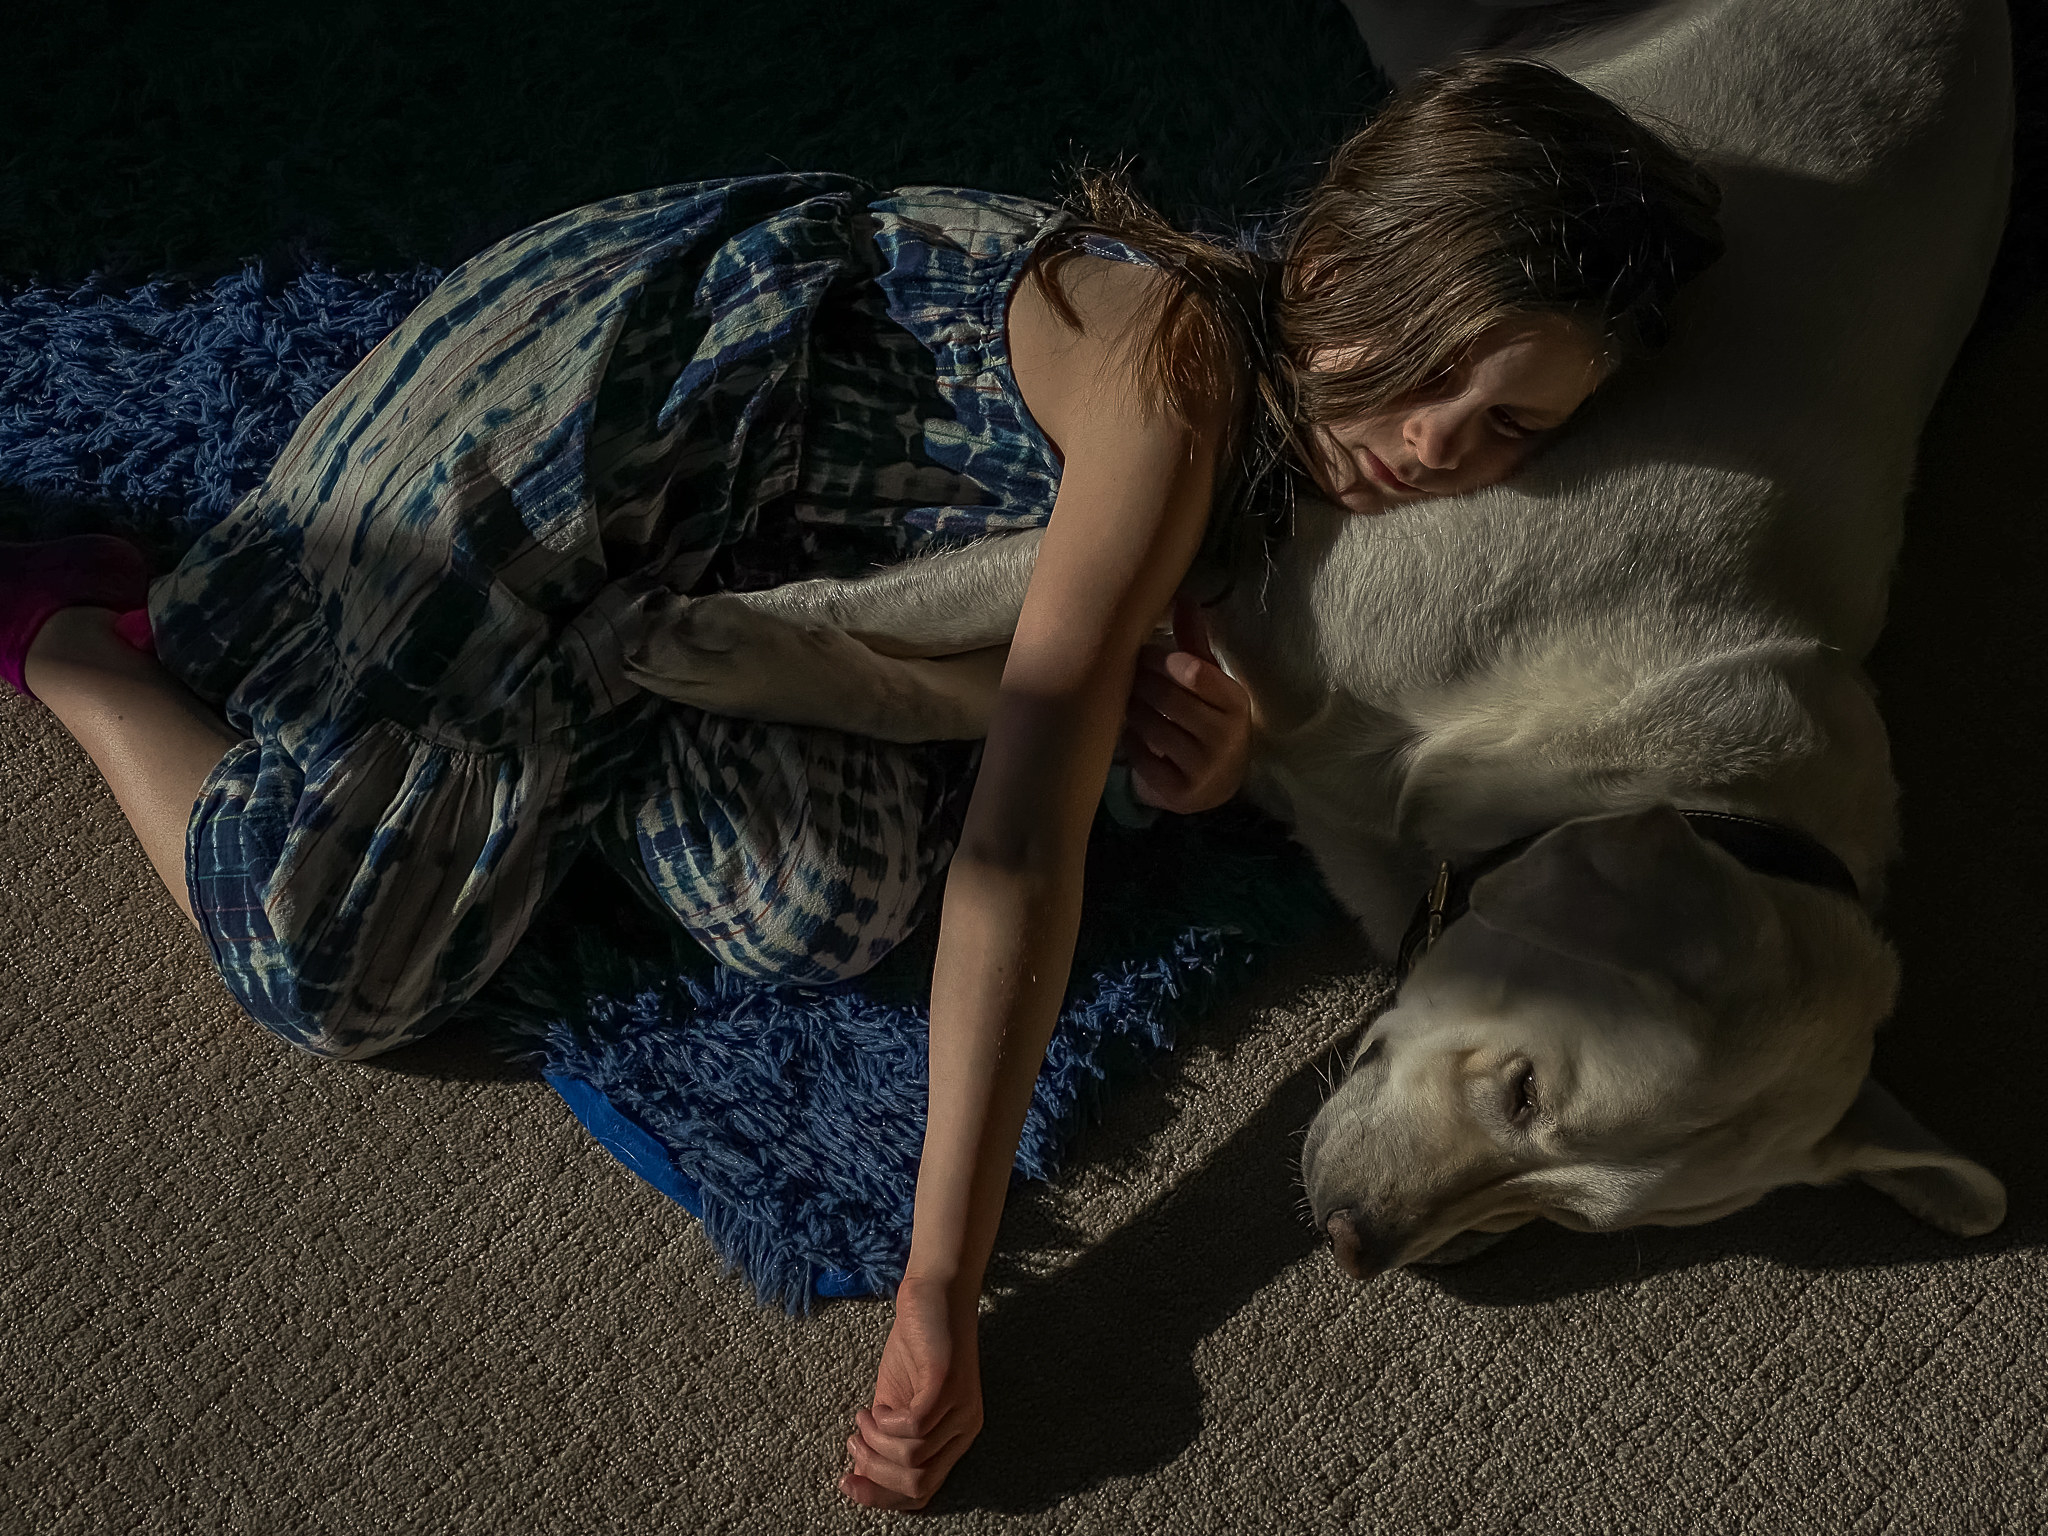 A girl sleeping on the floor with a dog at night